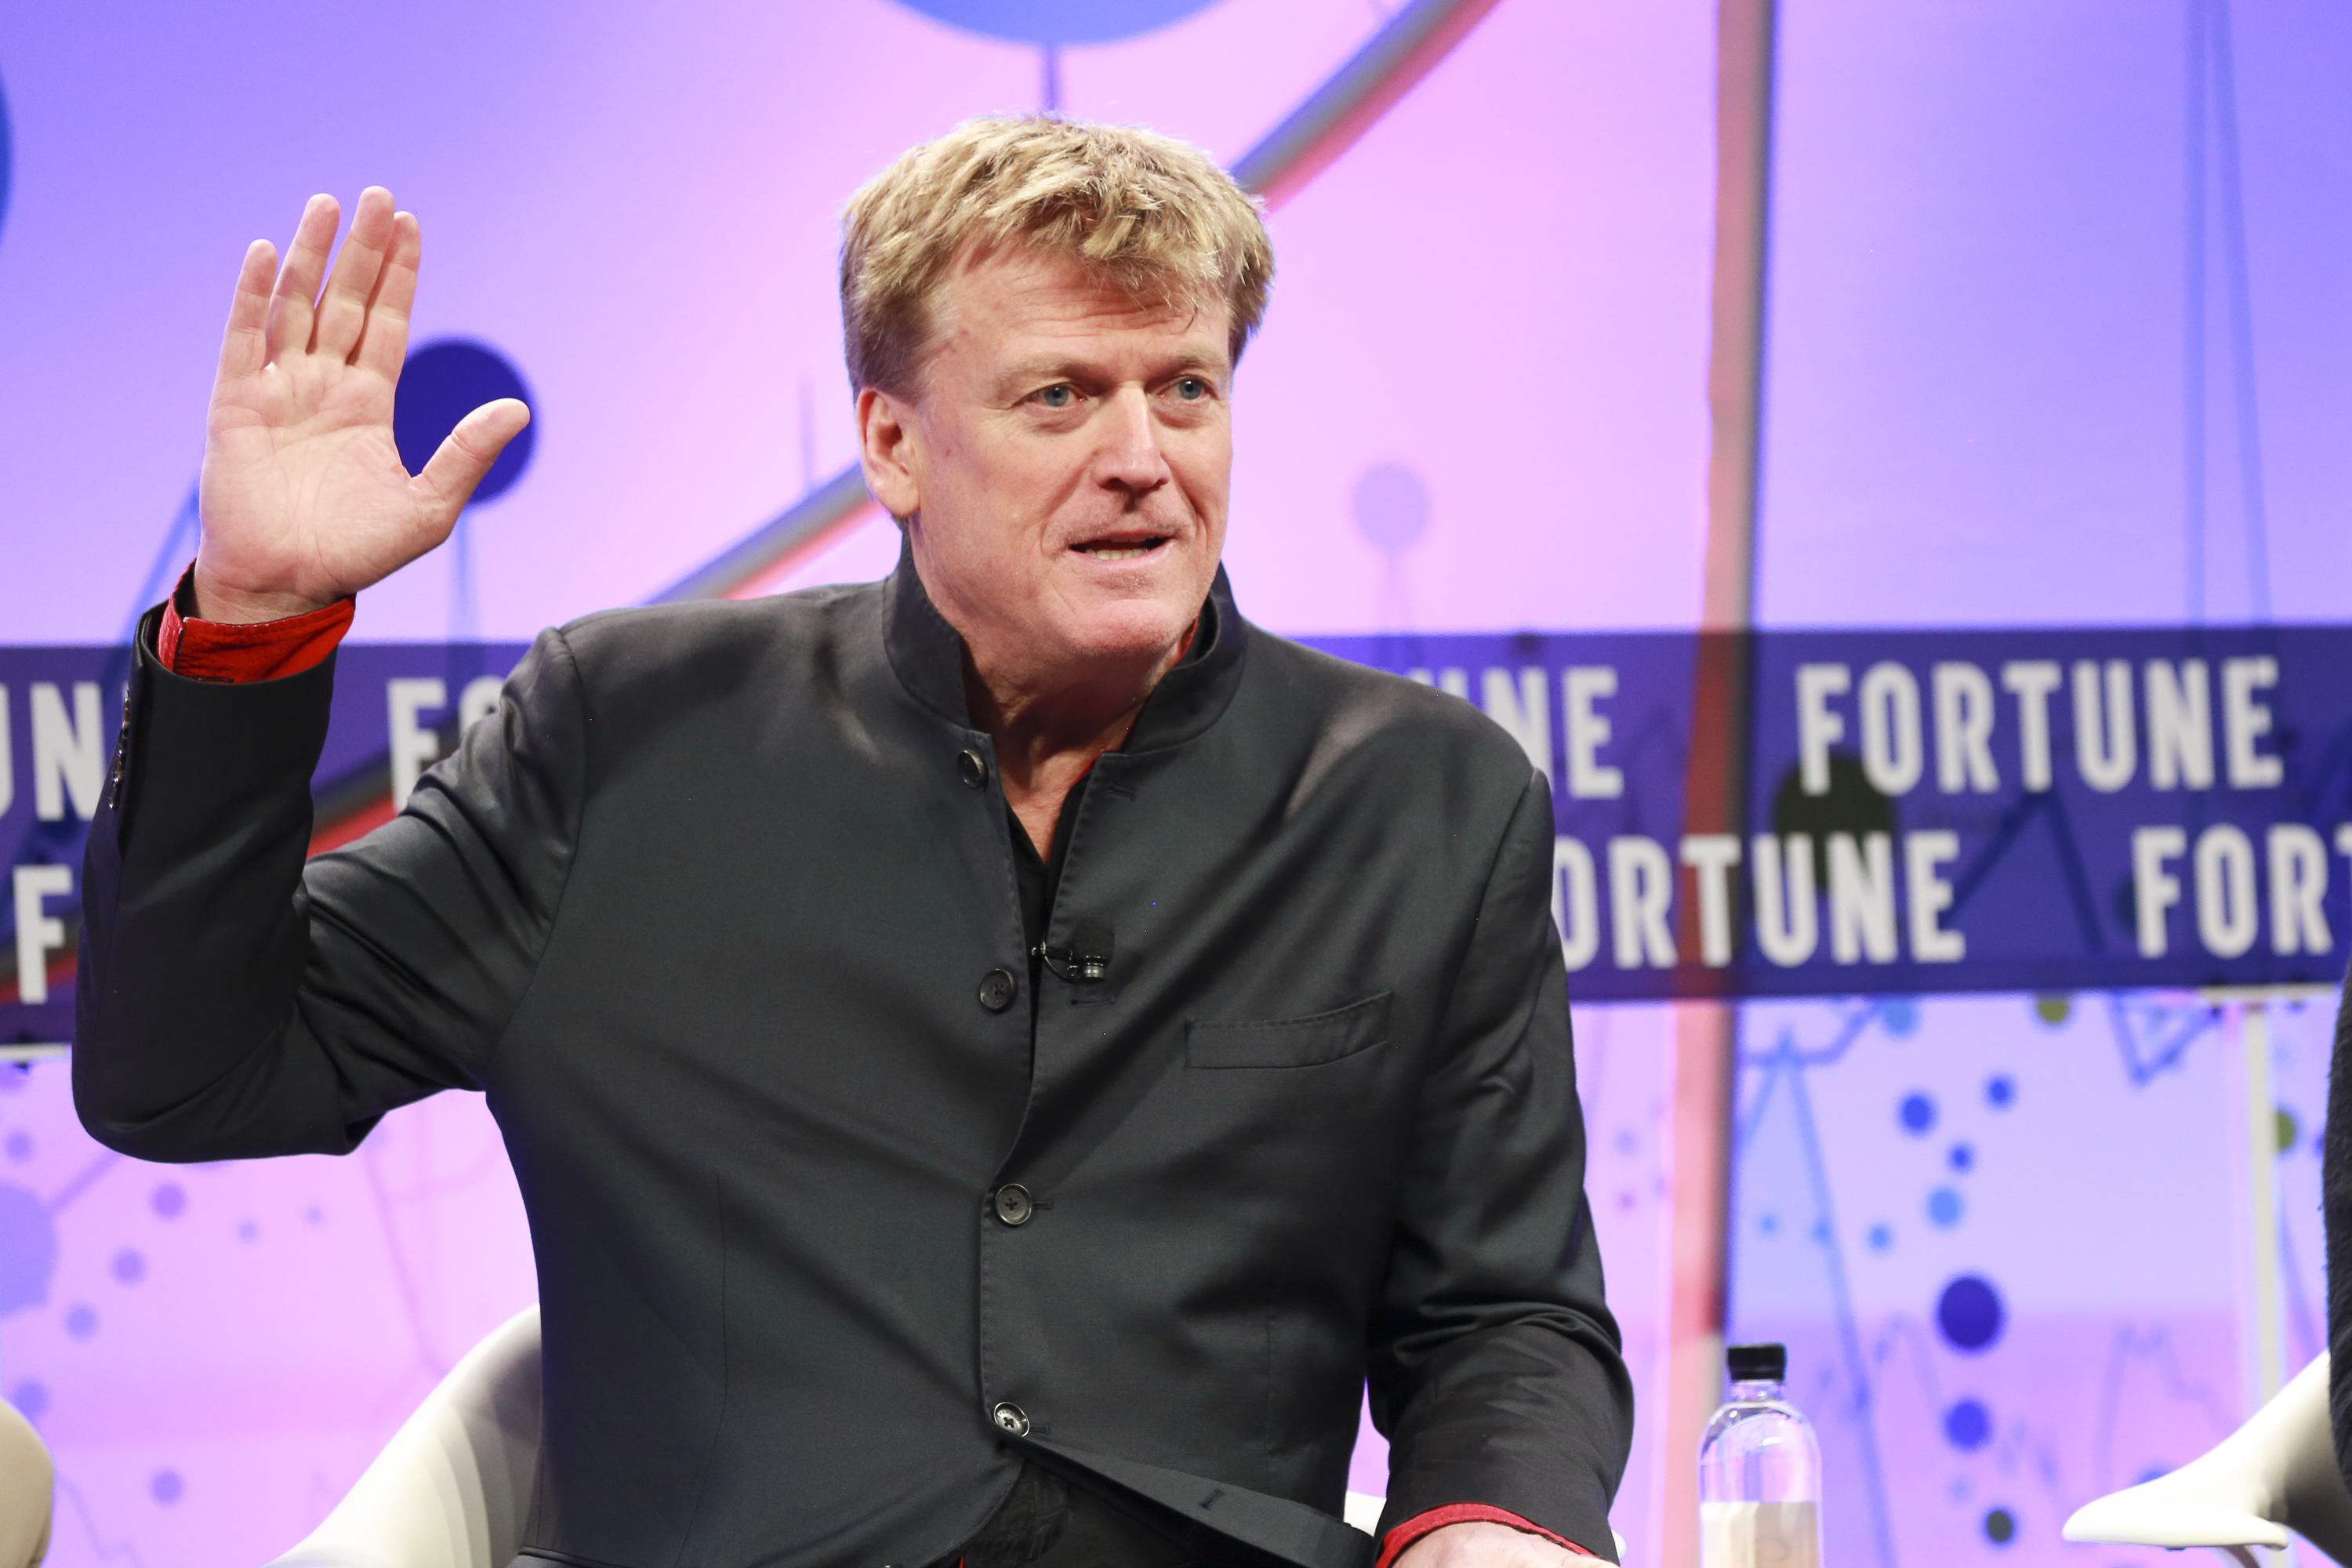 Patrick Byrne, CEO of Overstock.com at Fortune Brainstorm Finance.